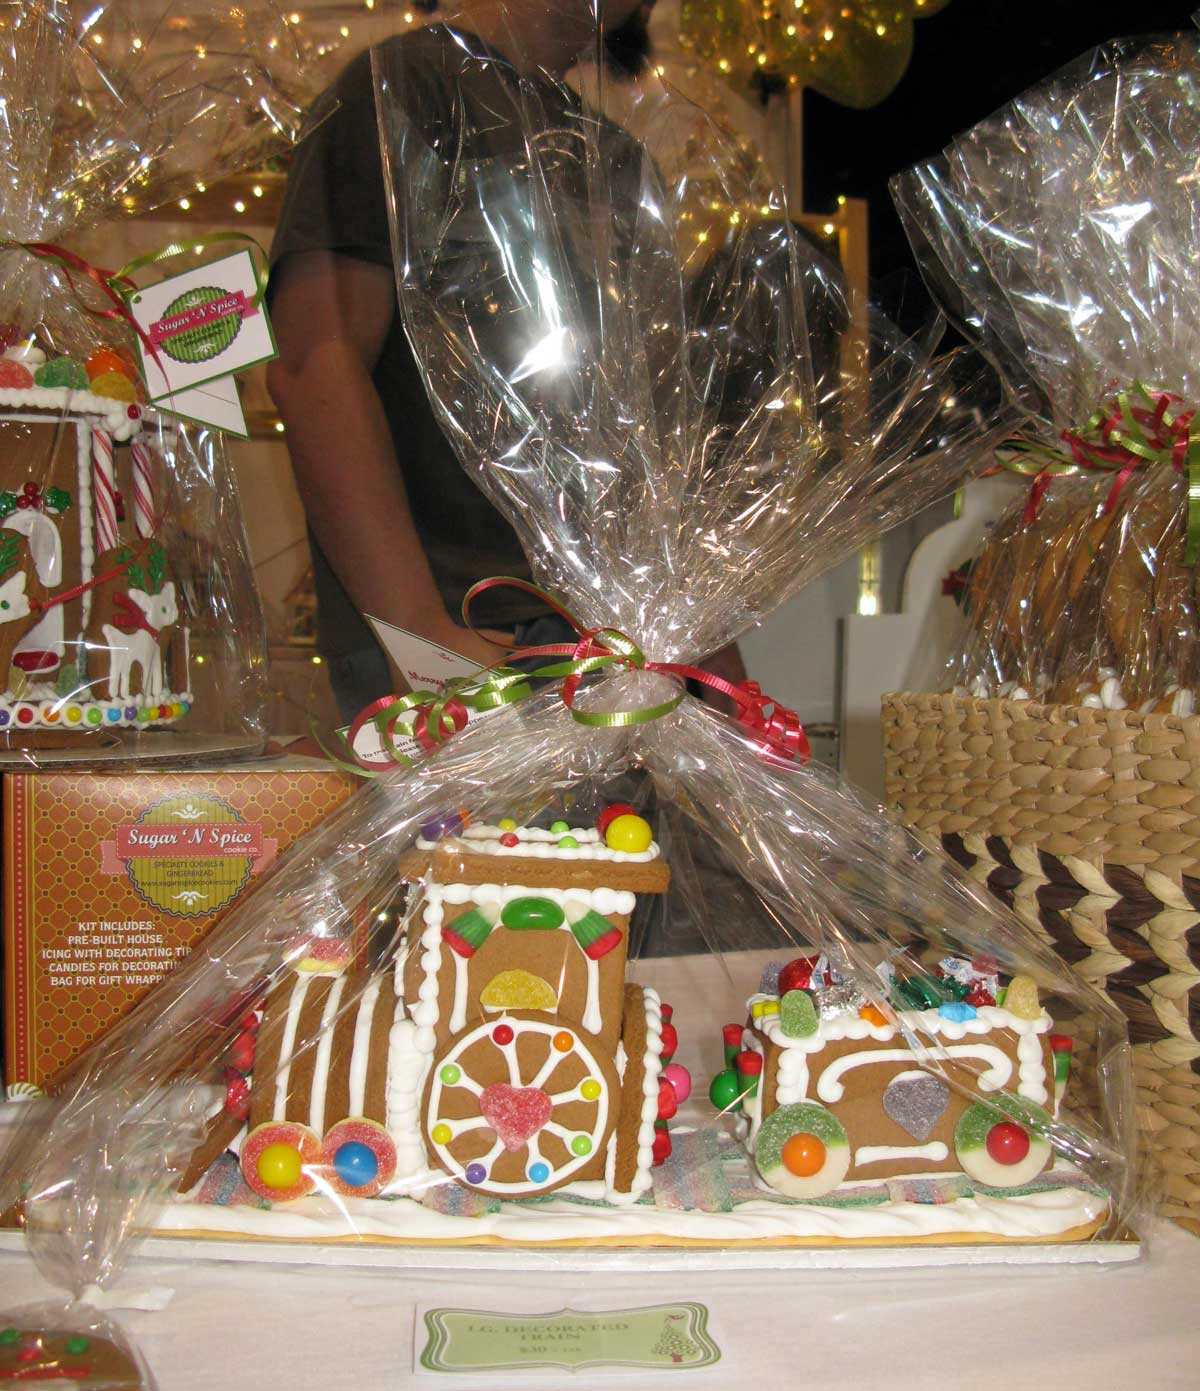 SUGAR N SPICE: Gingerbread Train